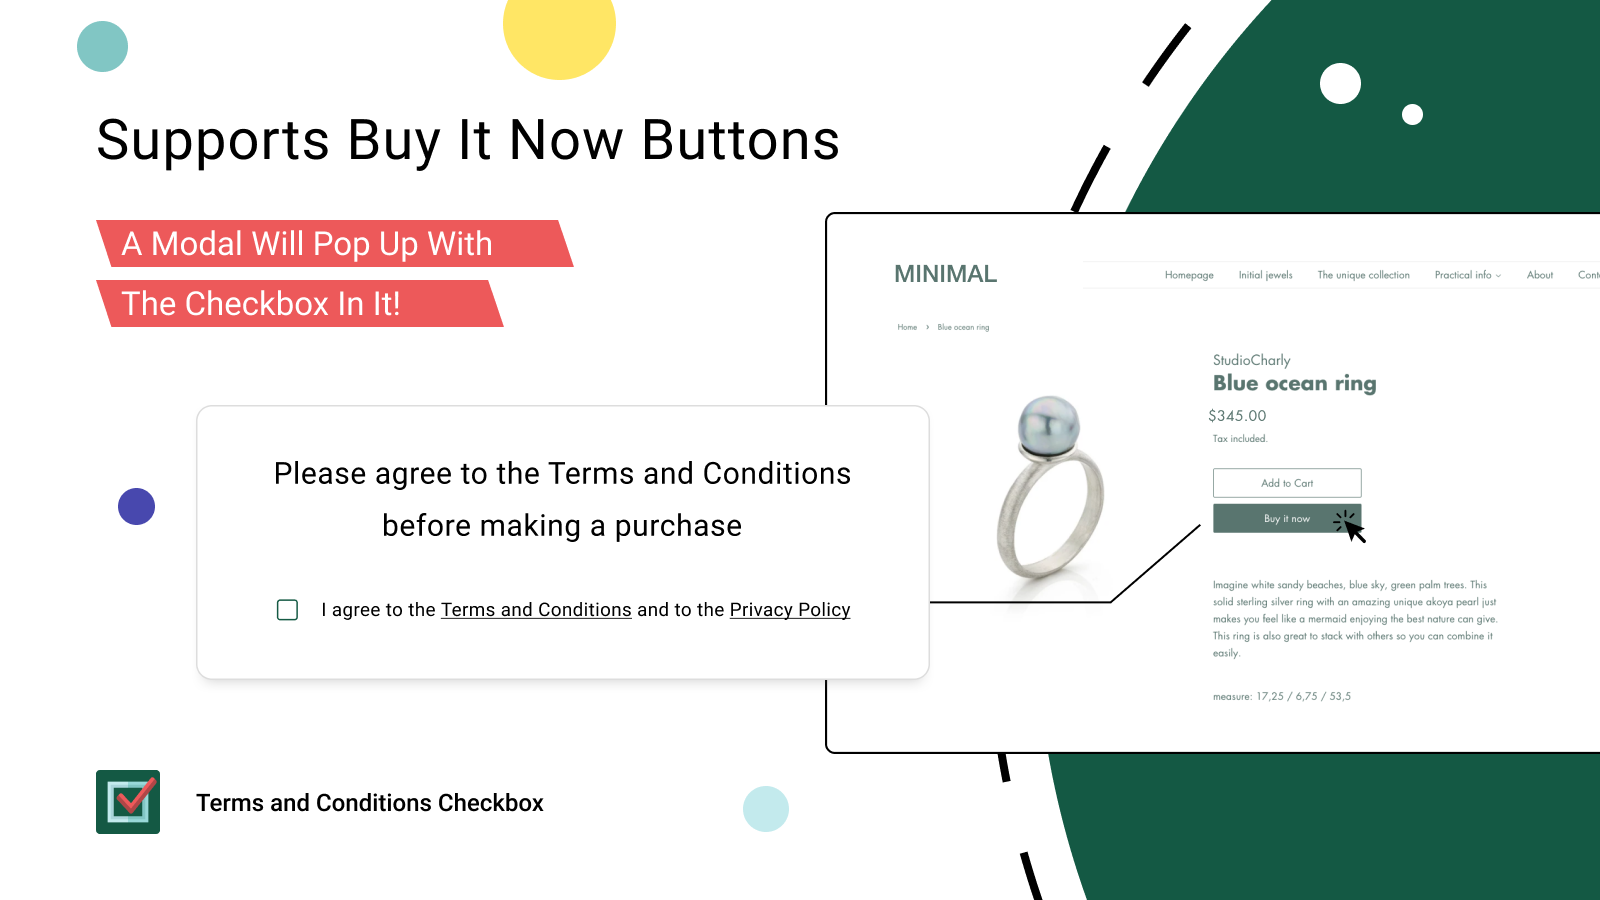 The app supports Buy It Now buttons